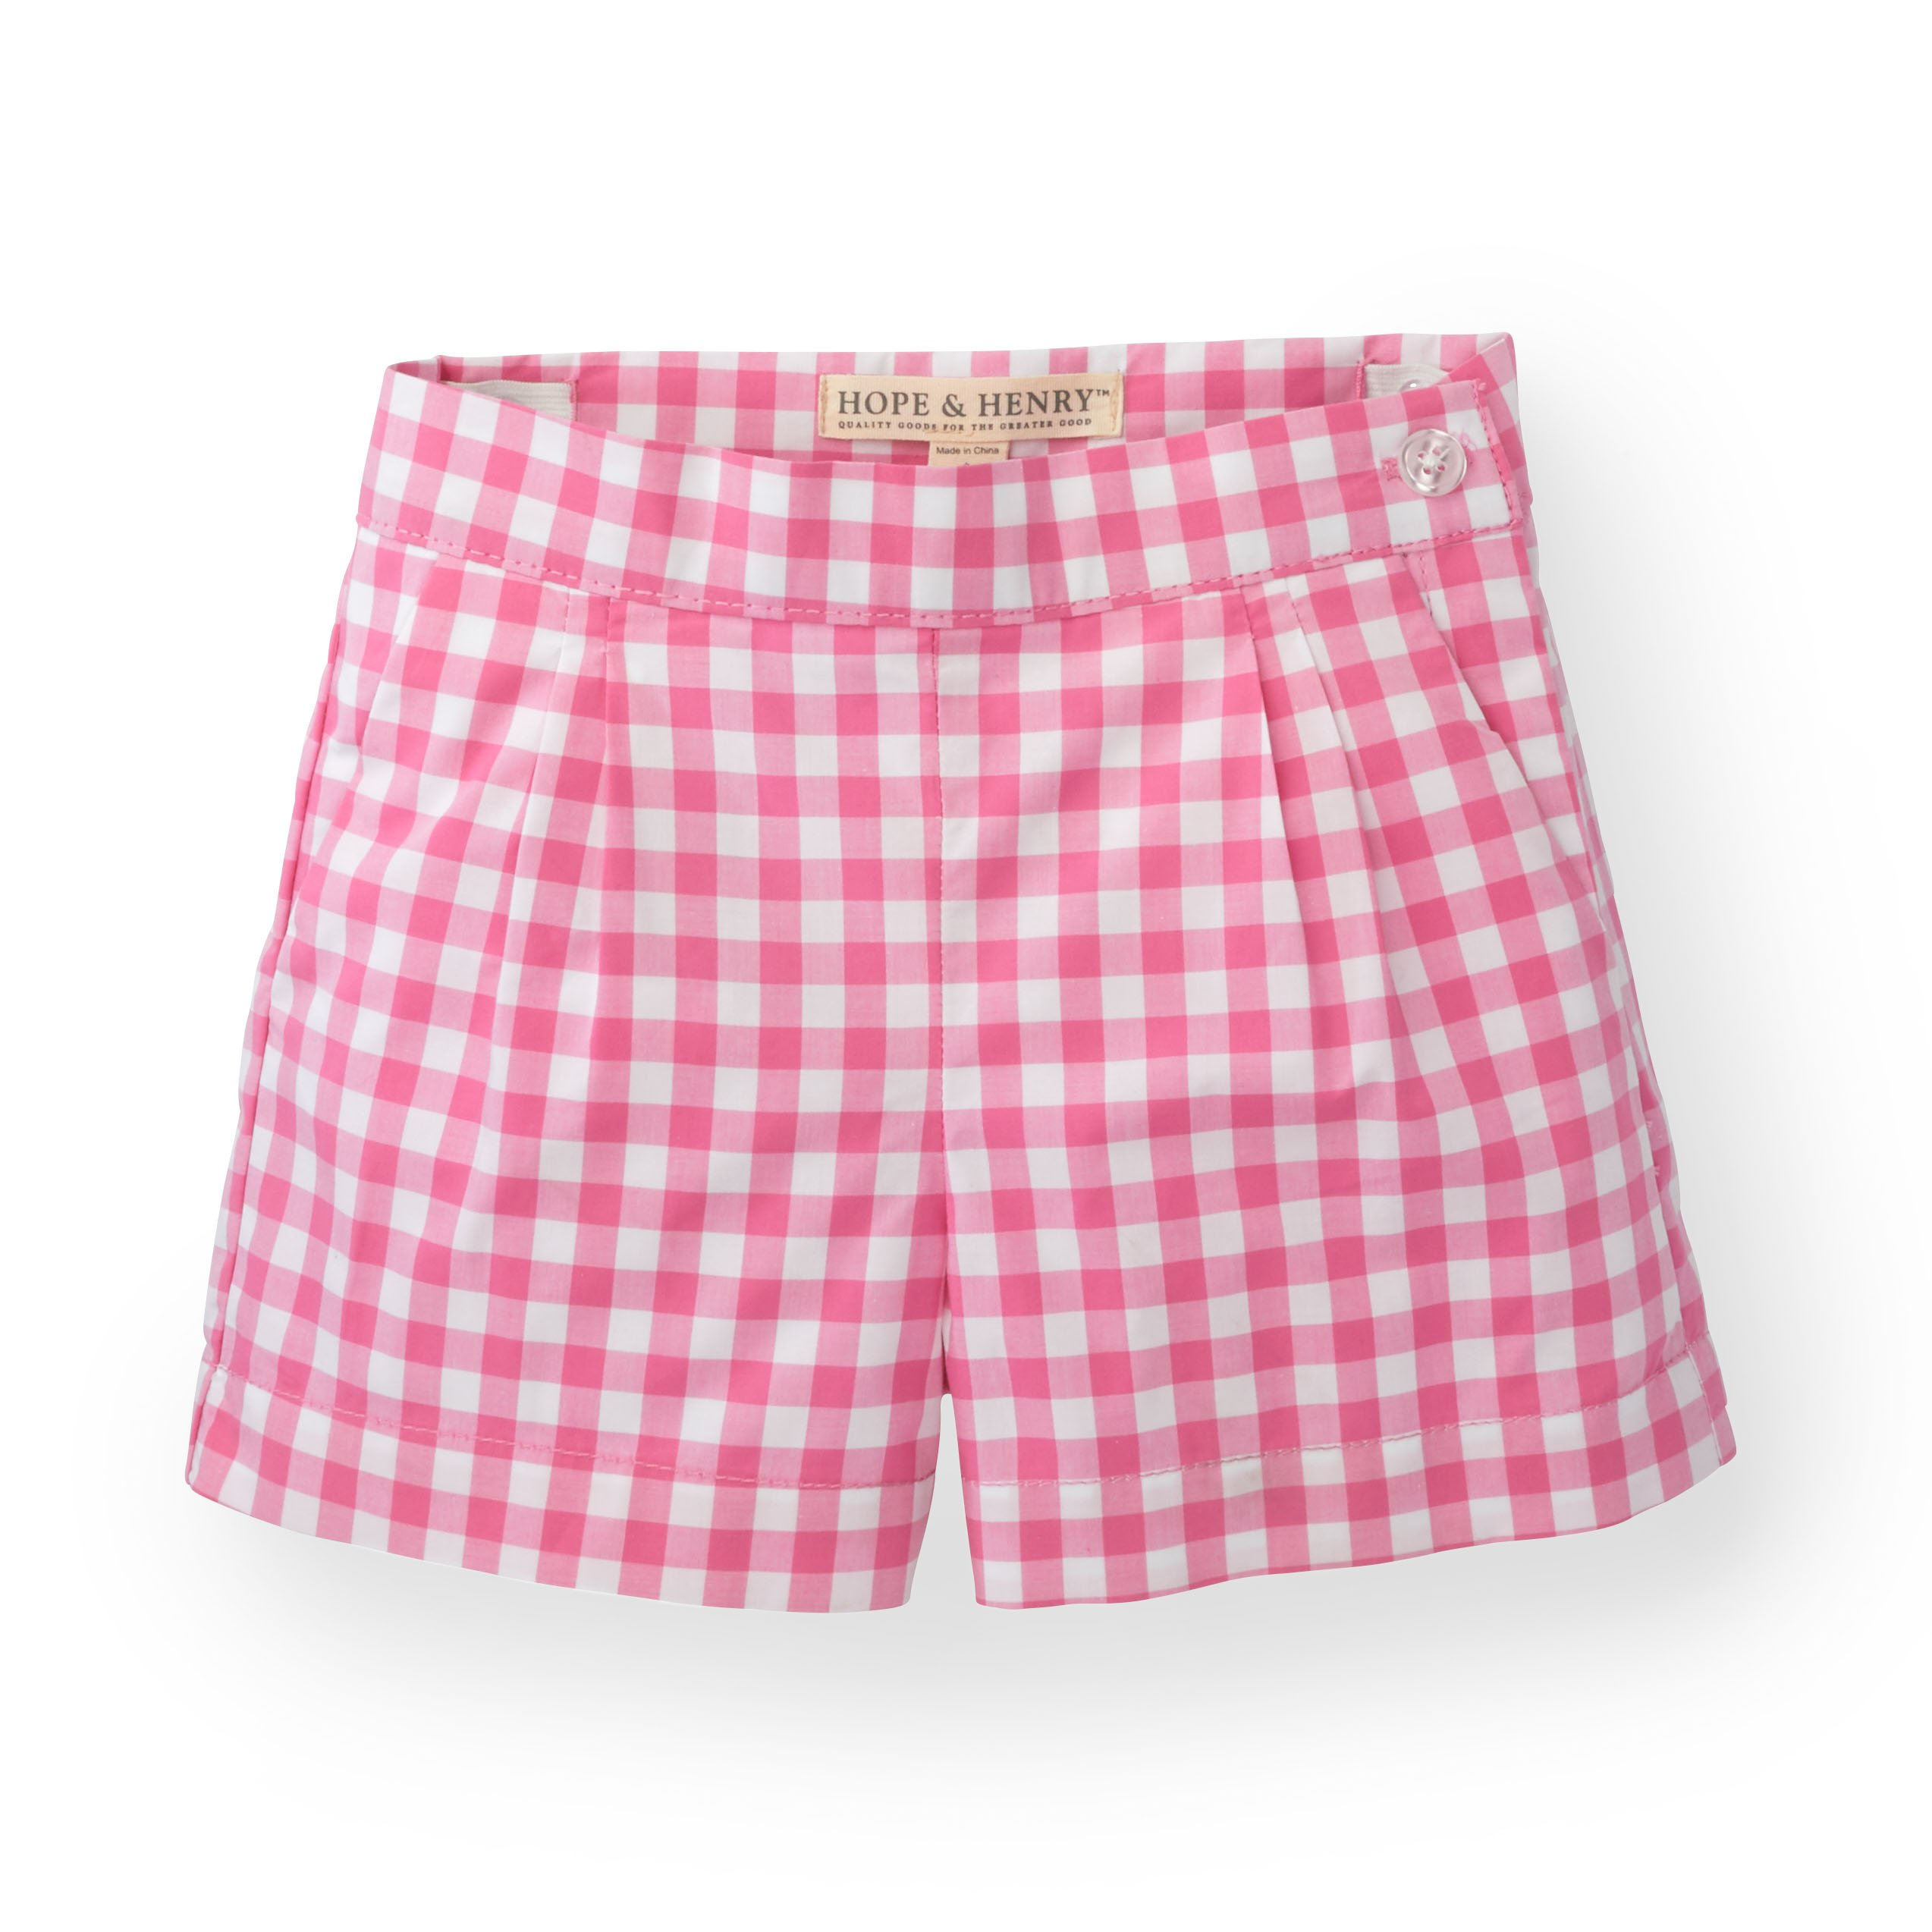 Hope & Henry Girls' Pink Gingham Pleat Short Made with Organic Cotton